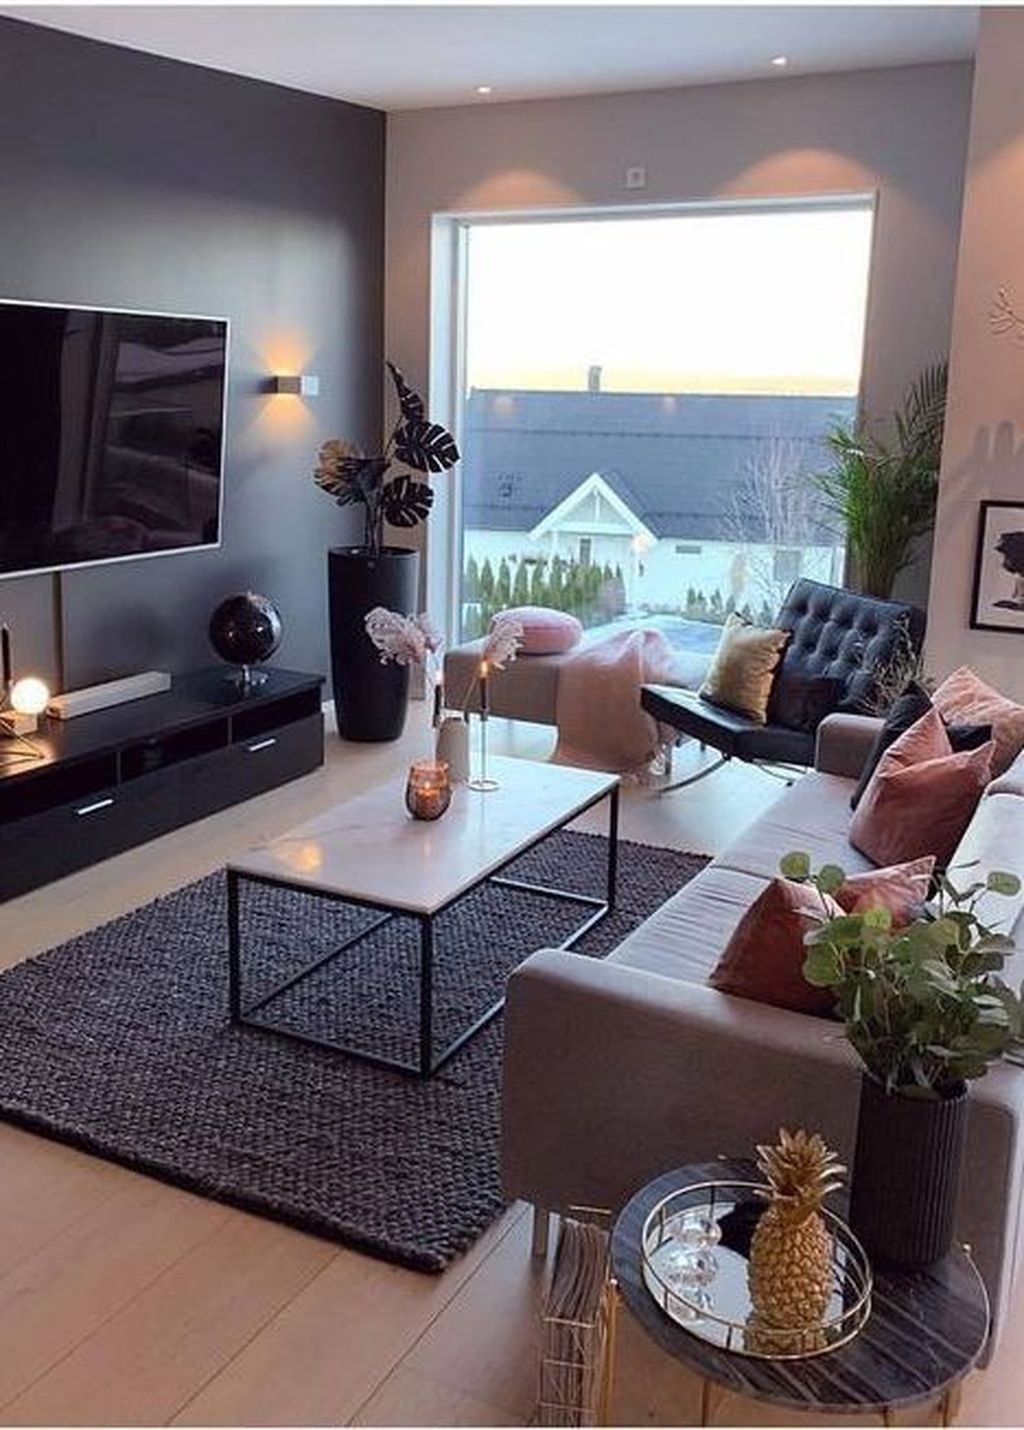 35 Classy Small Living Room Designs Ideas For Best Inspiration In 2020 Apartment Living Room Living Room Decor Apartment Living Room Warm #pics #of #living #room #designs